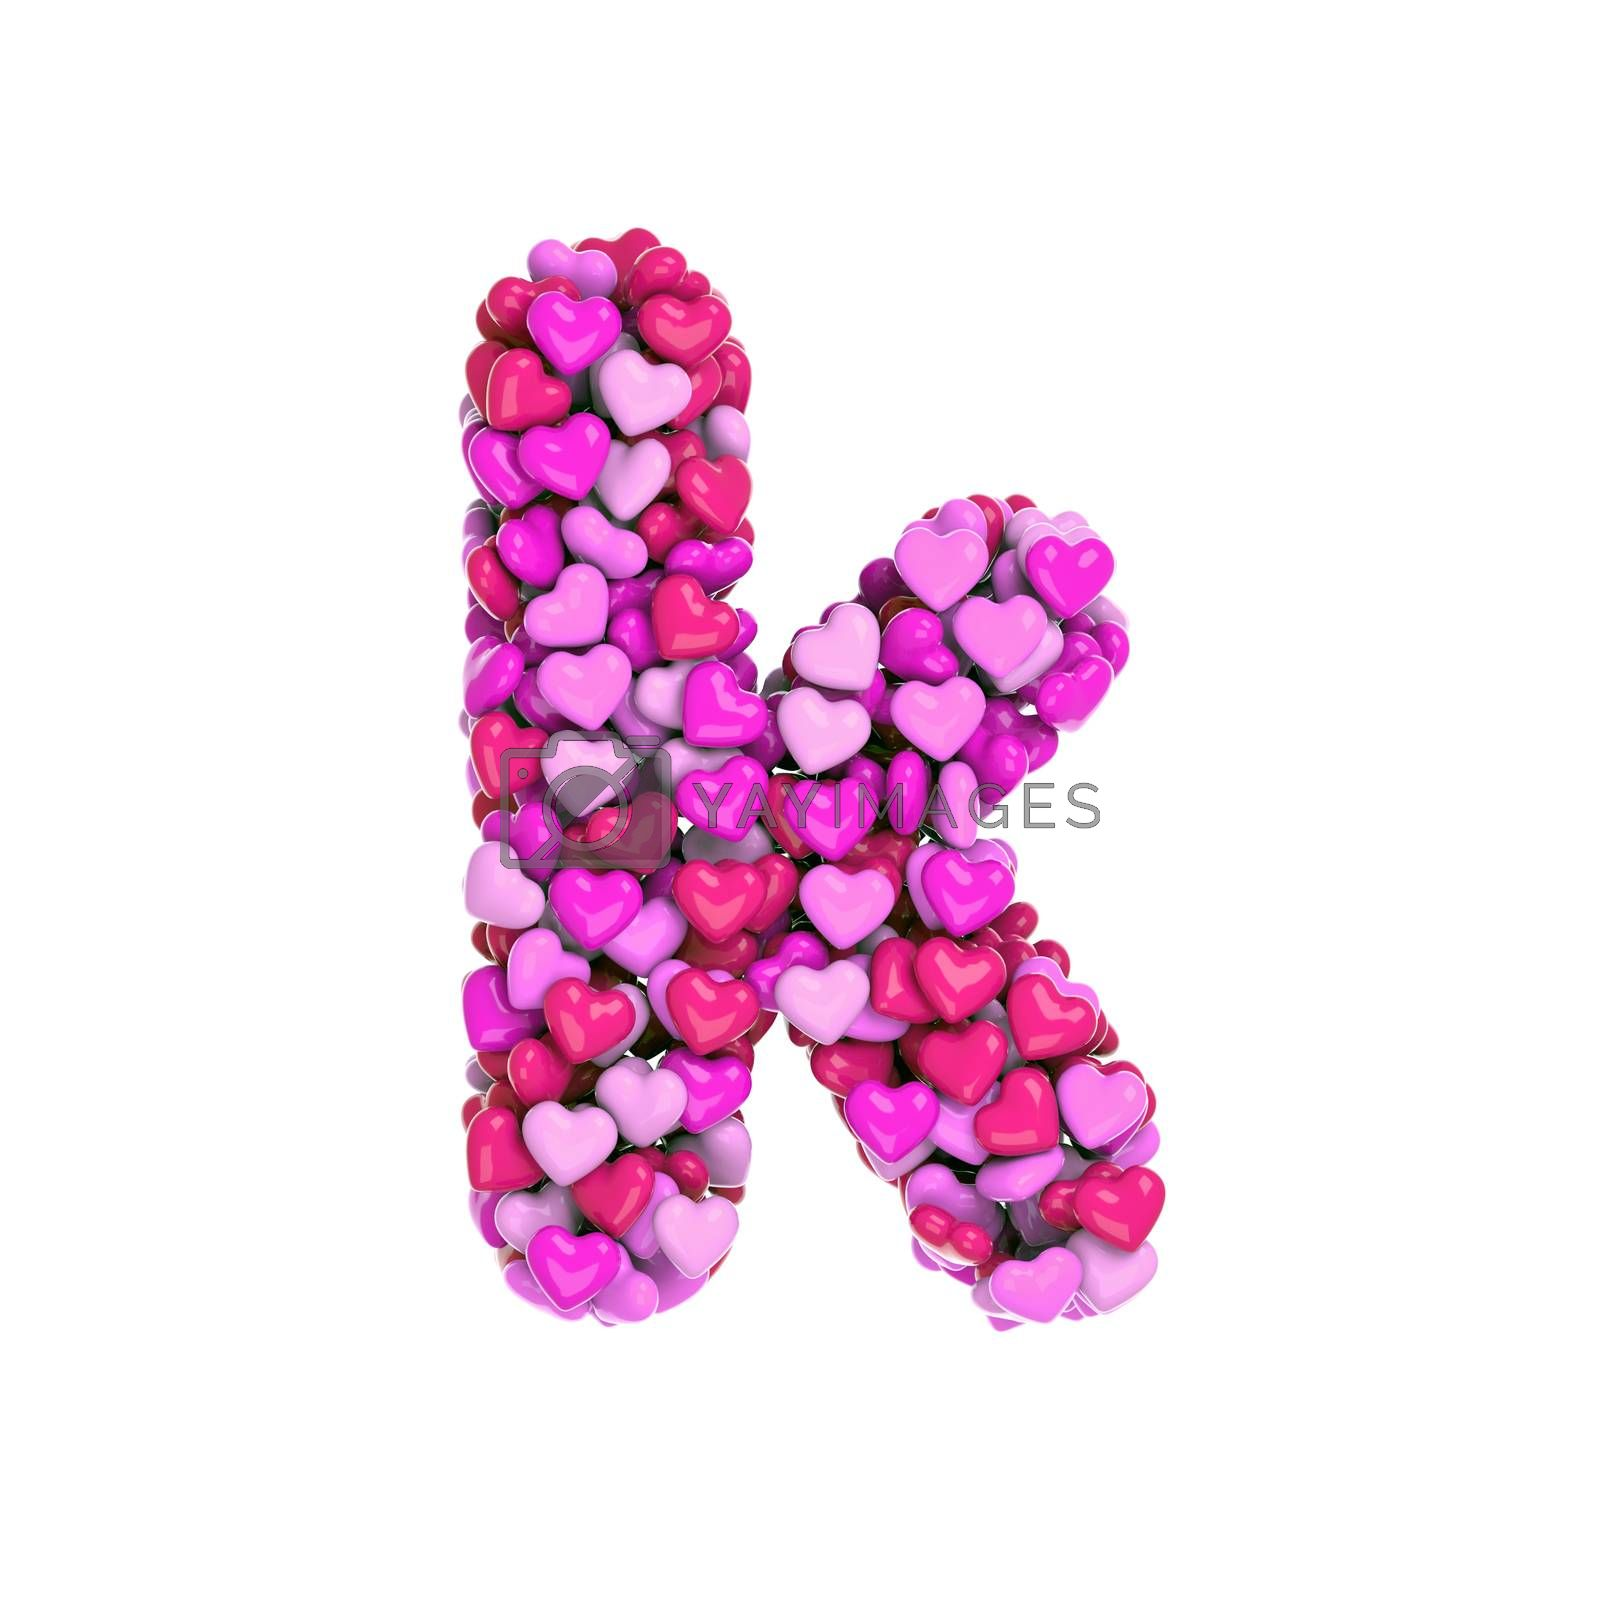 Valentine letter K - Lower-case 3d pink hearts font - Love, passion or wedding concept by chrisroll